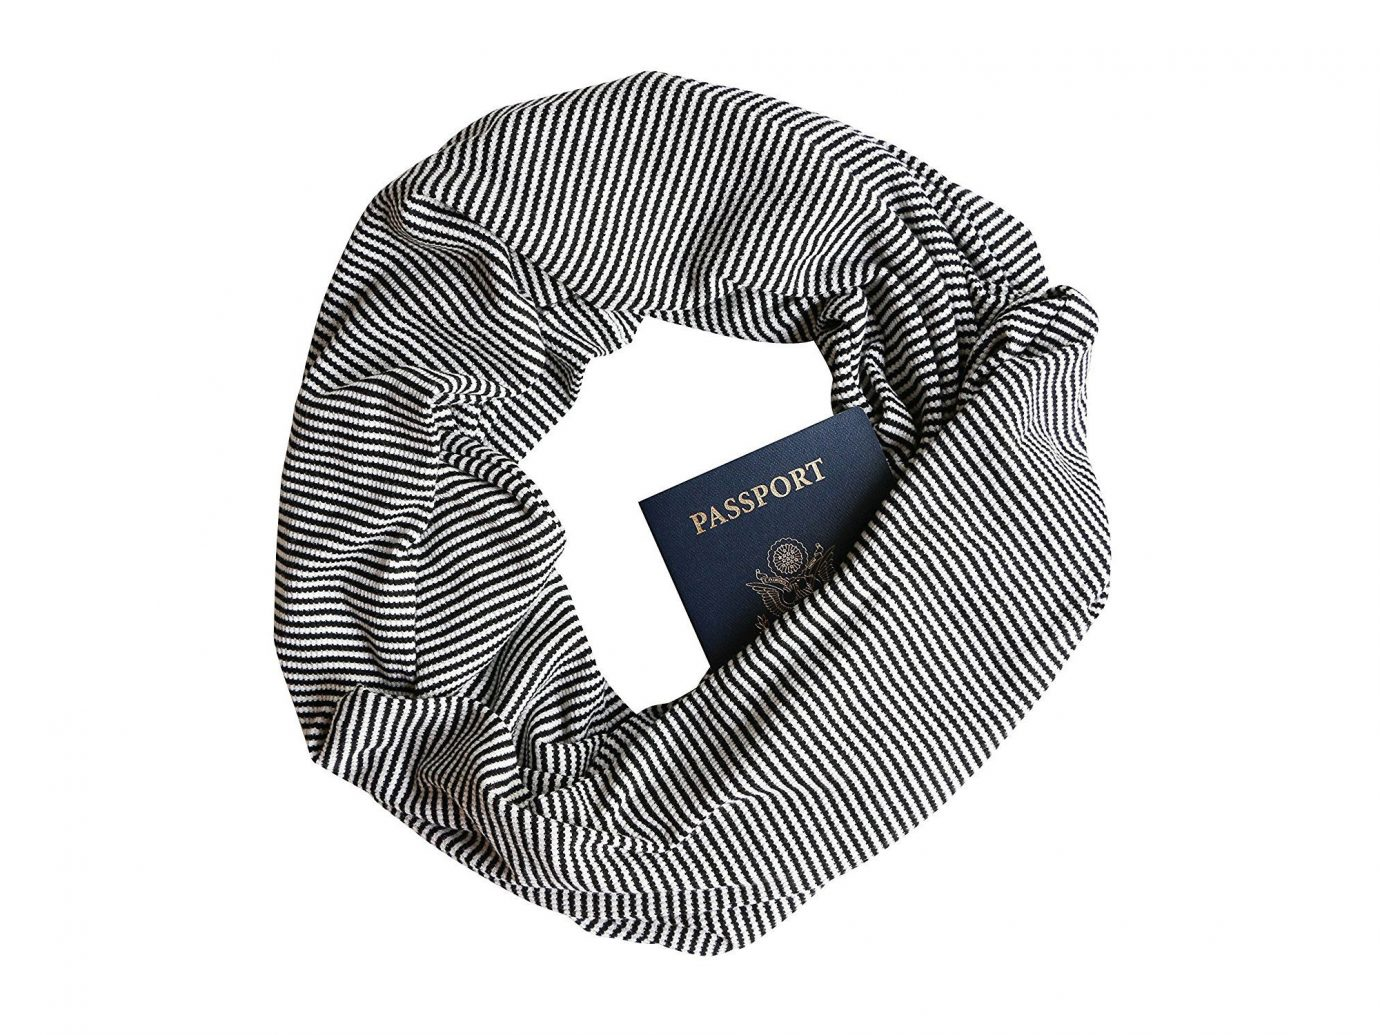 Packing Tips Solo Travel Travel Shop Travel Tips scarf font product design pattern product